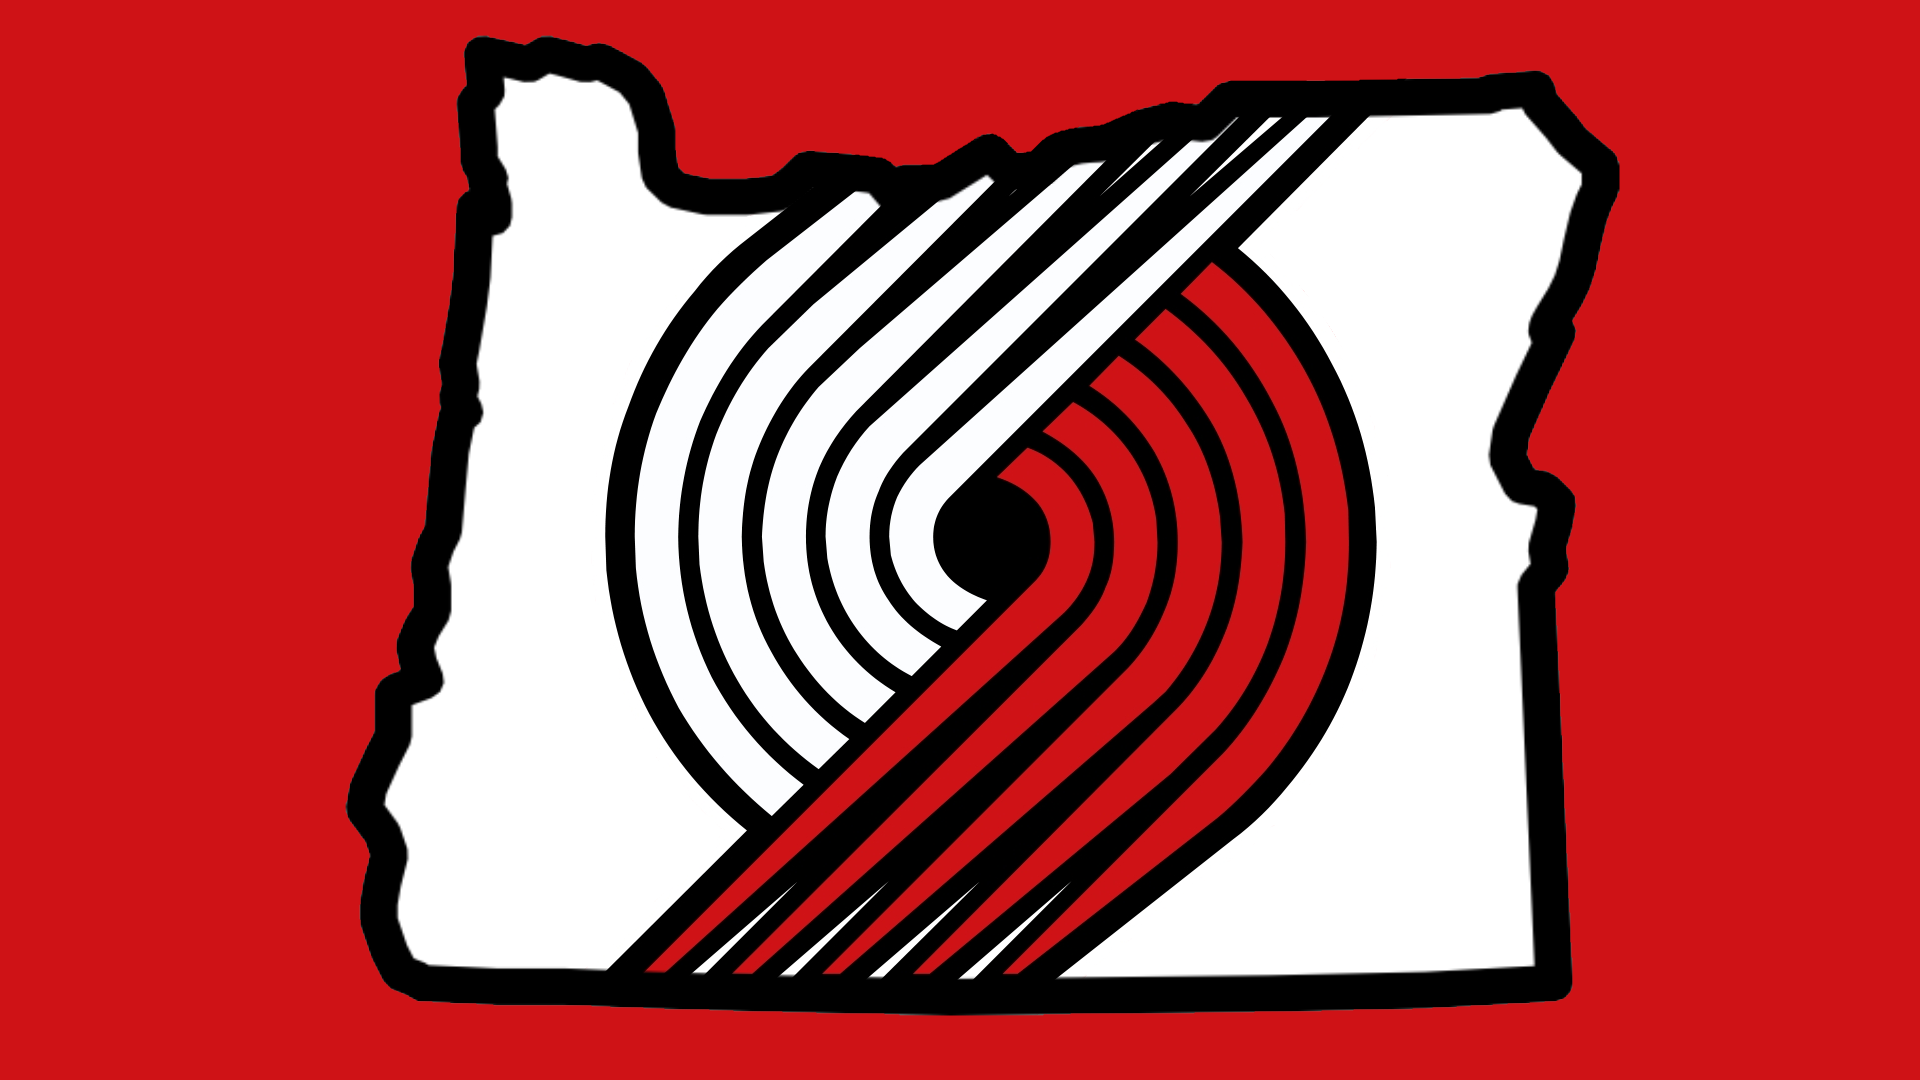 Portland Trail Blazers Logo Wallpaper In Preparation For The